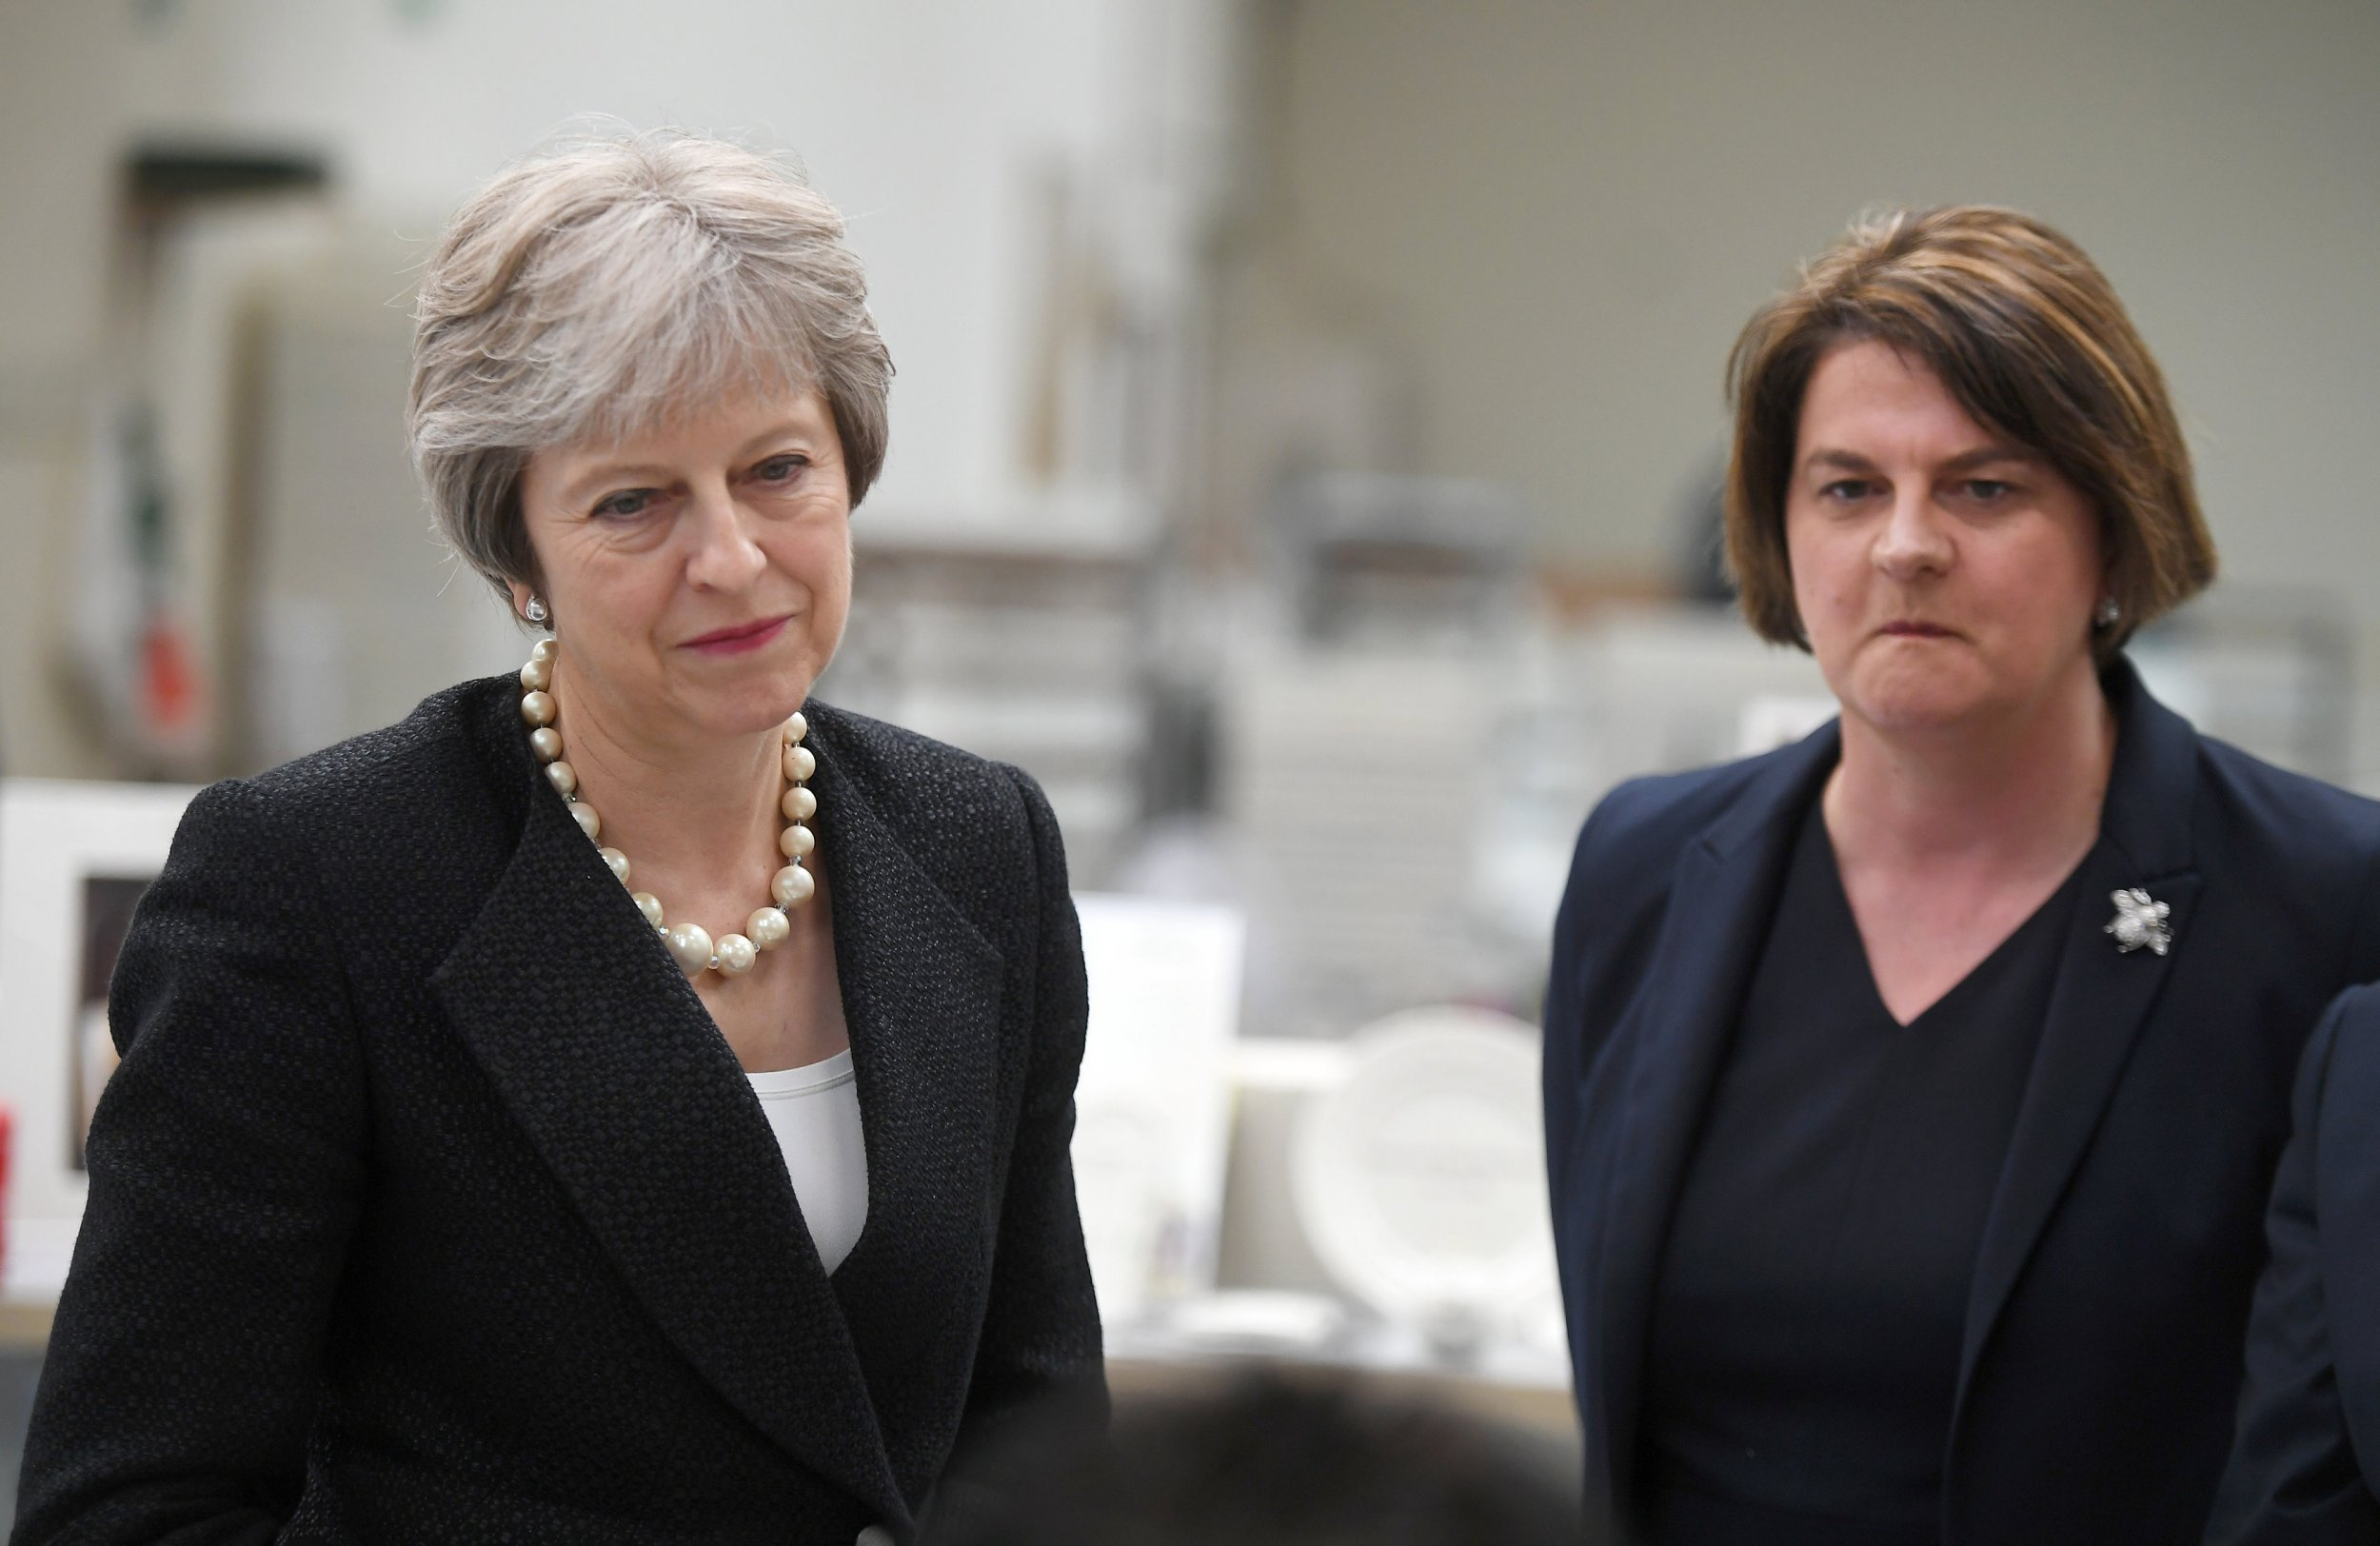 ST BELLEEK, NORTHERN IRELAND - JULY 19: British Prime Minister Theresa May and Arlene Foster, the leader of the Democratic Unionist Party (DUP) visit Belleek Pottery, on July 19, 2018 in St Belleek, Fermanagh, Northern Ireland. The Prime Minister is visiting Northern Ireland for the first time since becoming Prime Minister. She will visit the Irish border and discuss the potential impact of Brexit with Northern Irish businesses. (Photo by Clodagh Kilcoyne - WPA Pool/Getty Images)